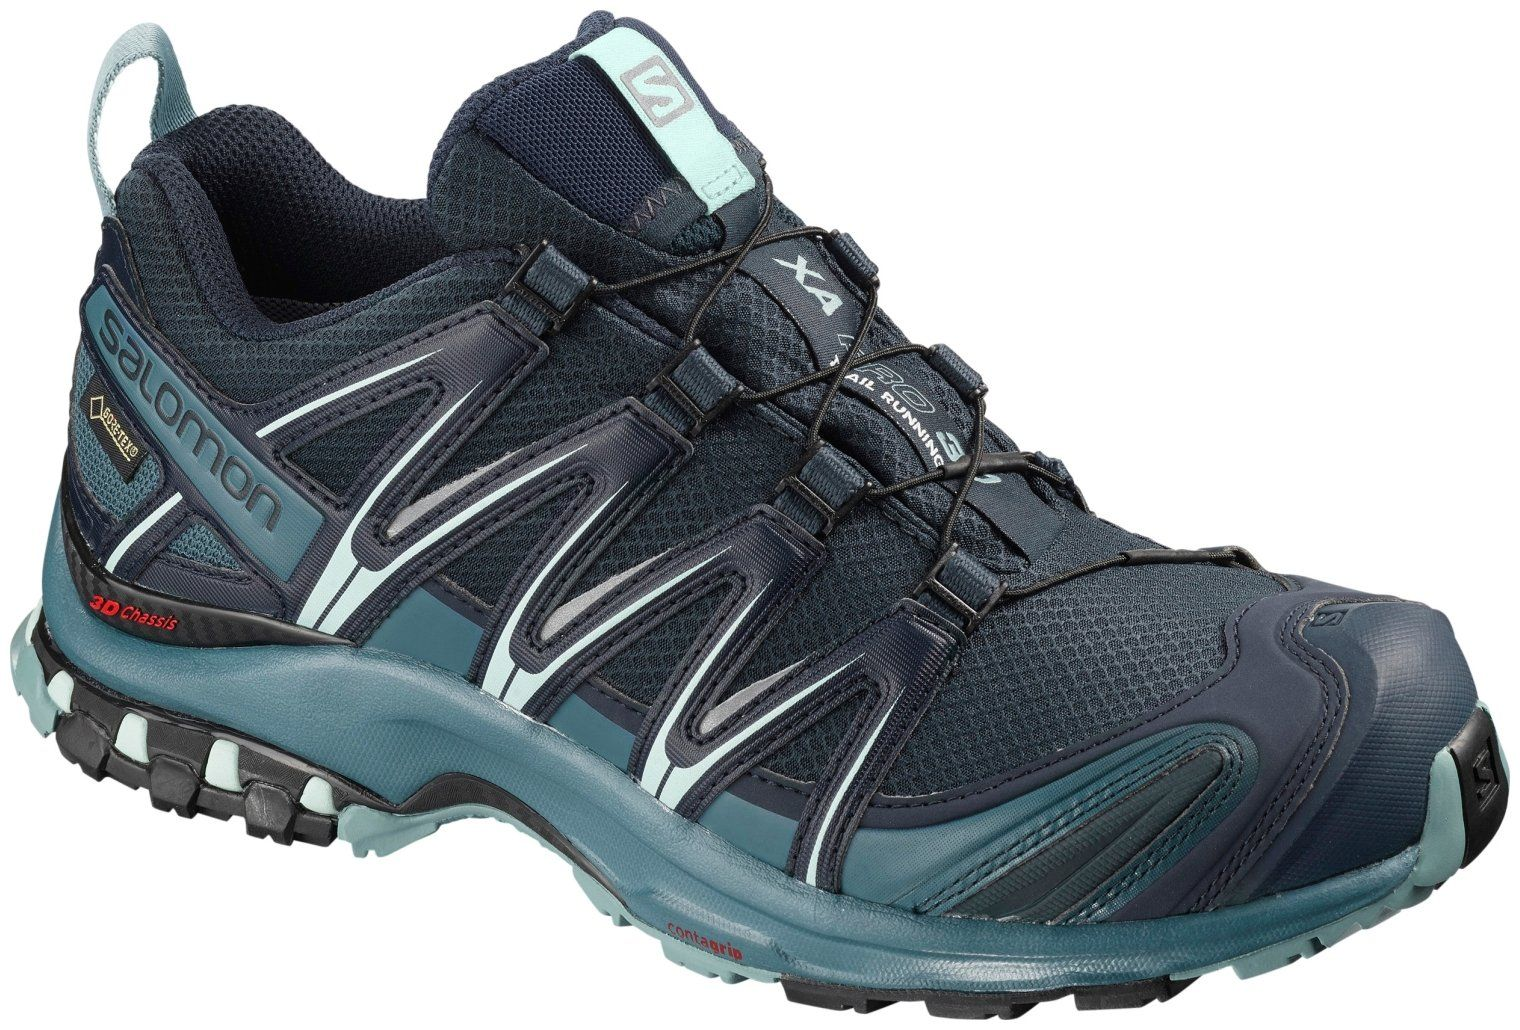 Salomon Xa Pro 3d Gtx Running Shoes Women S Running Shoes Womens Running Shoes Hiking Boots